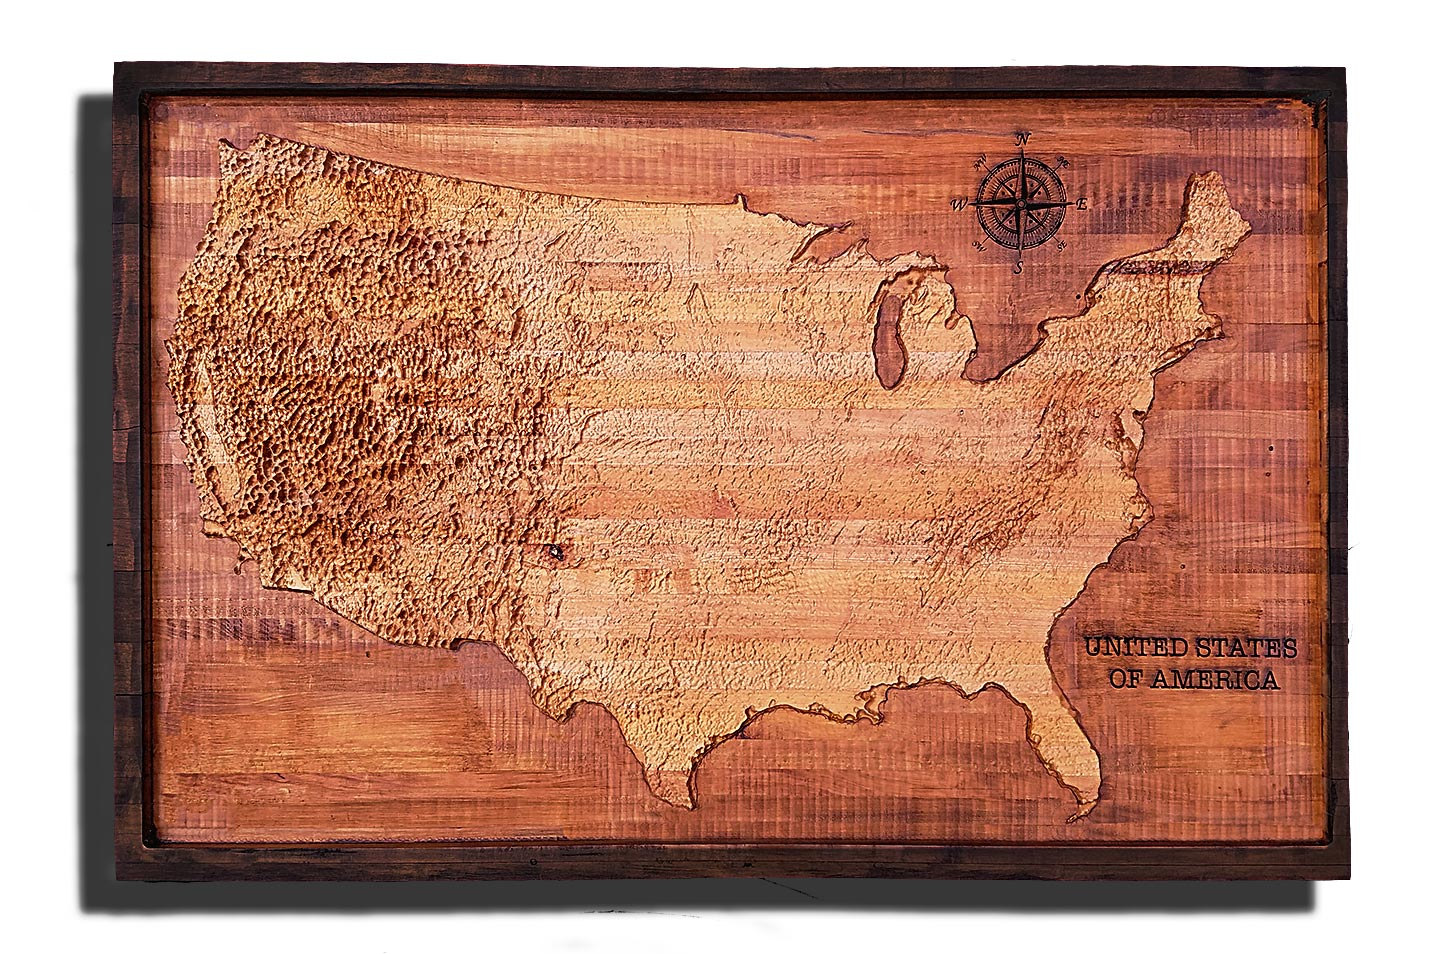 United States Map Topographic.United States Of America Topographical Map From A Varity Of Wood